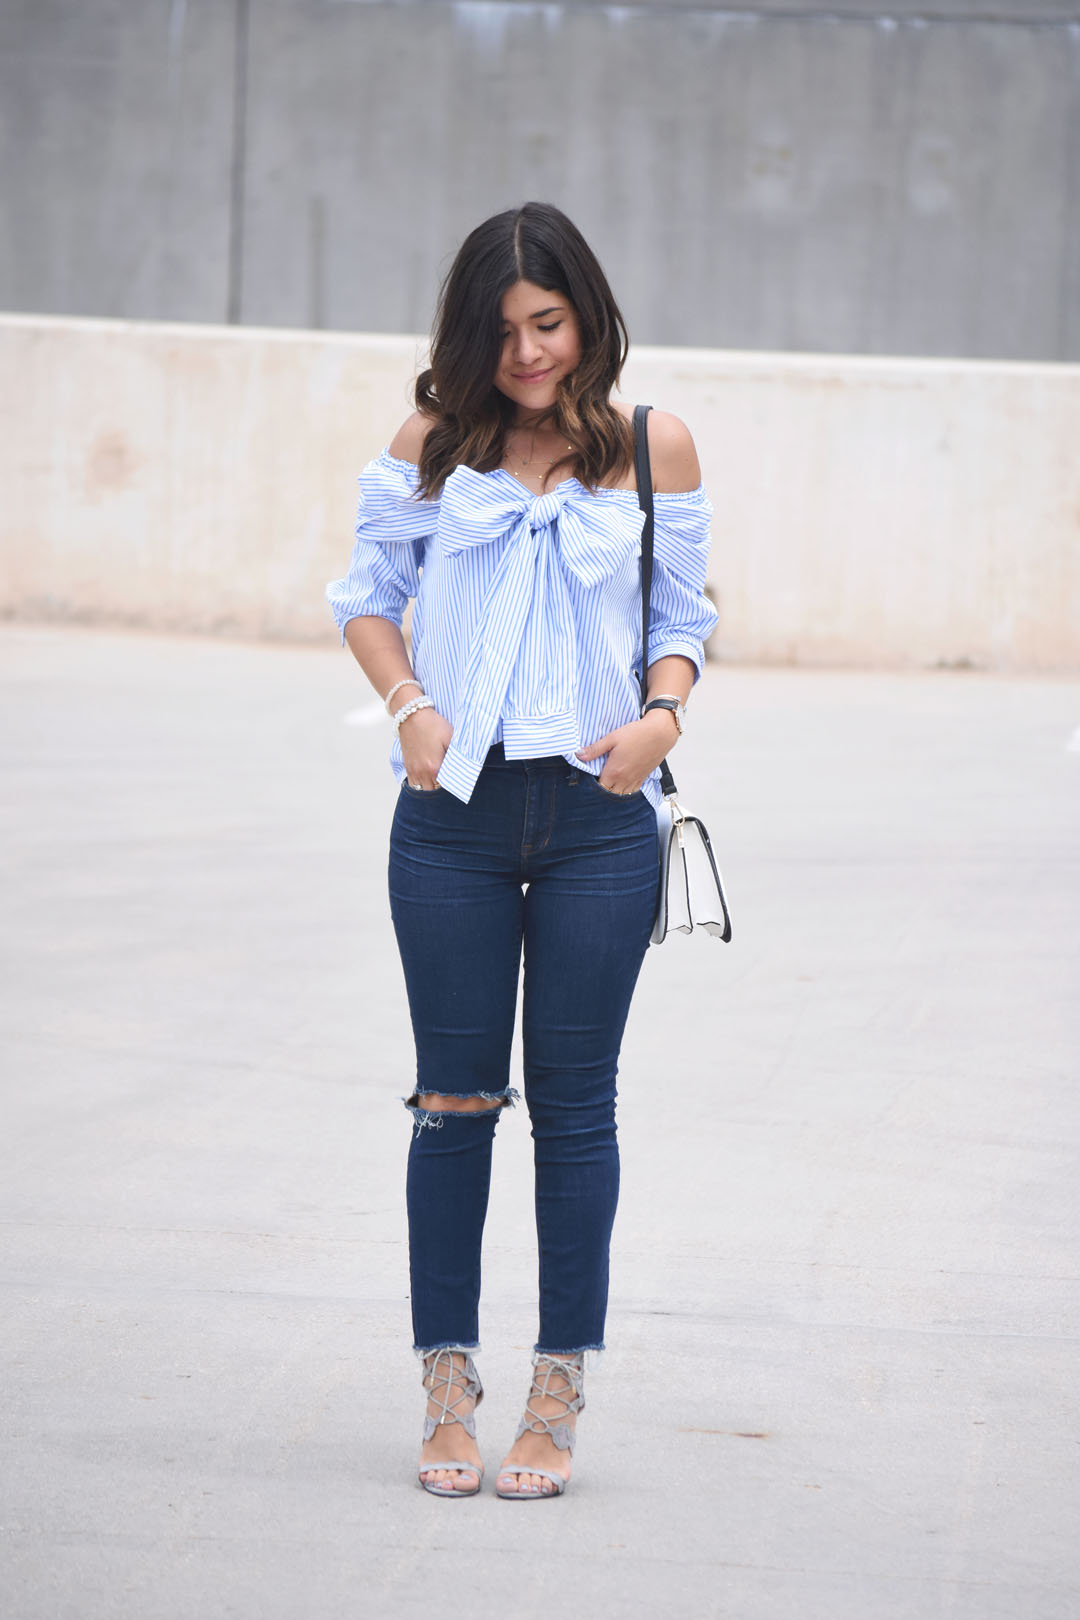 Carolina Hellal of the fashion blog Chic Talk wearing a SheIn tie front off the shoulders blouse, Madewell ripped jeans, and Public Desire grey sandals